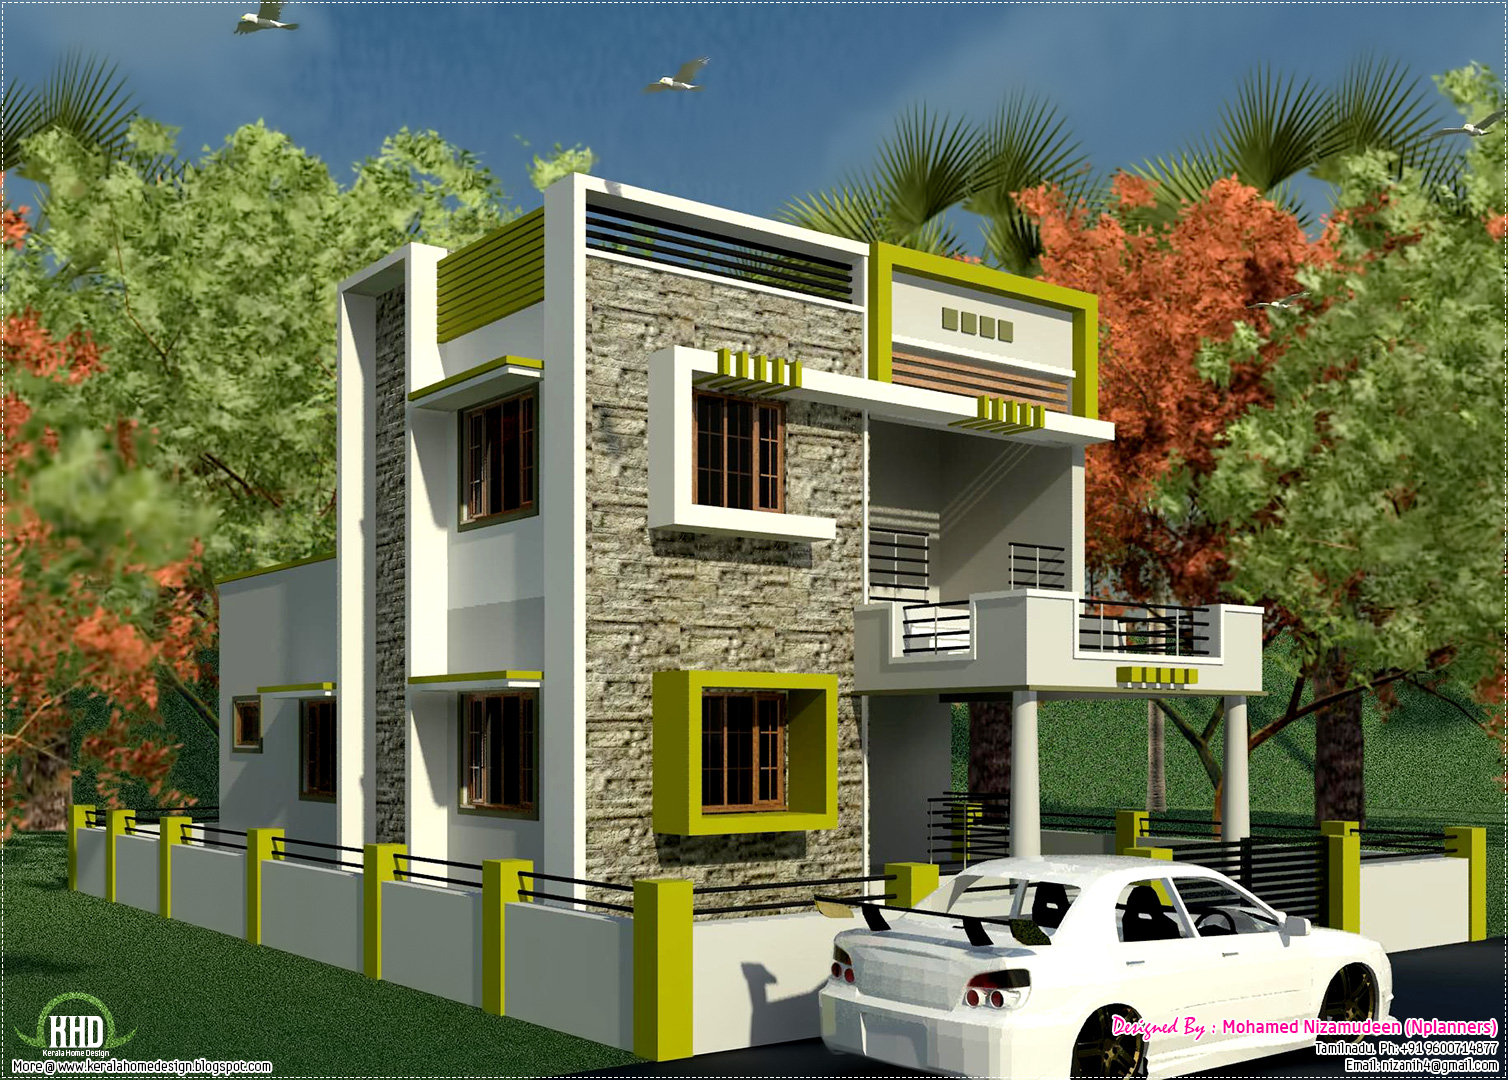 south indian house south indian style new modern 1460 sq feet house design kerala,How To Plan House Construction In India